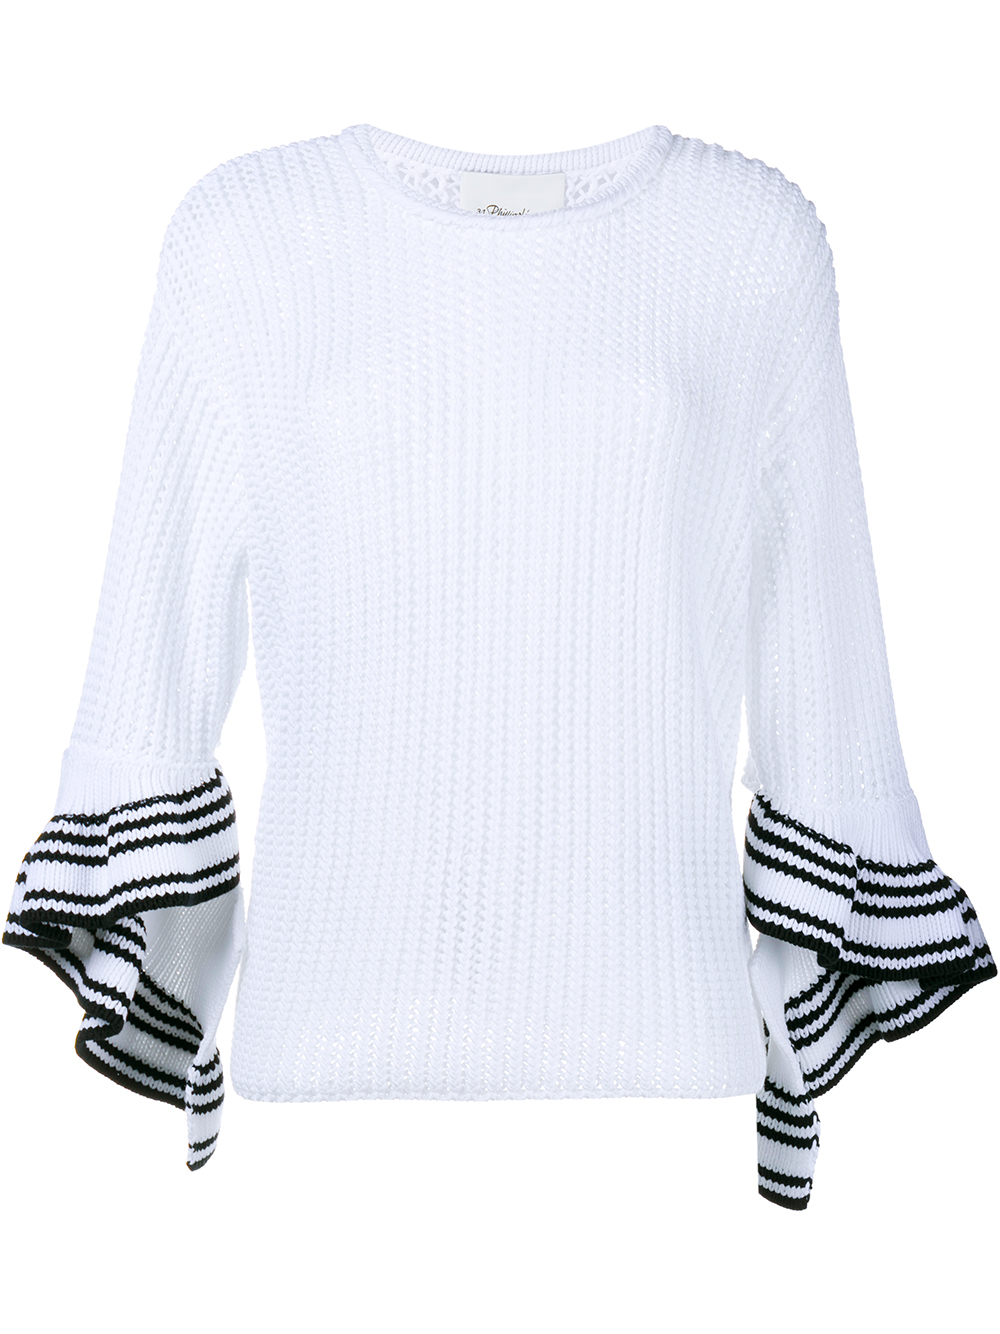 3.1 Phillip Lim sleeve-striped sweater